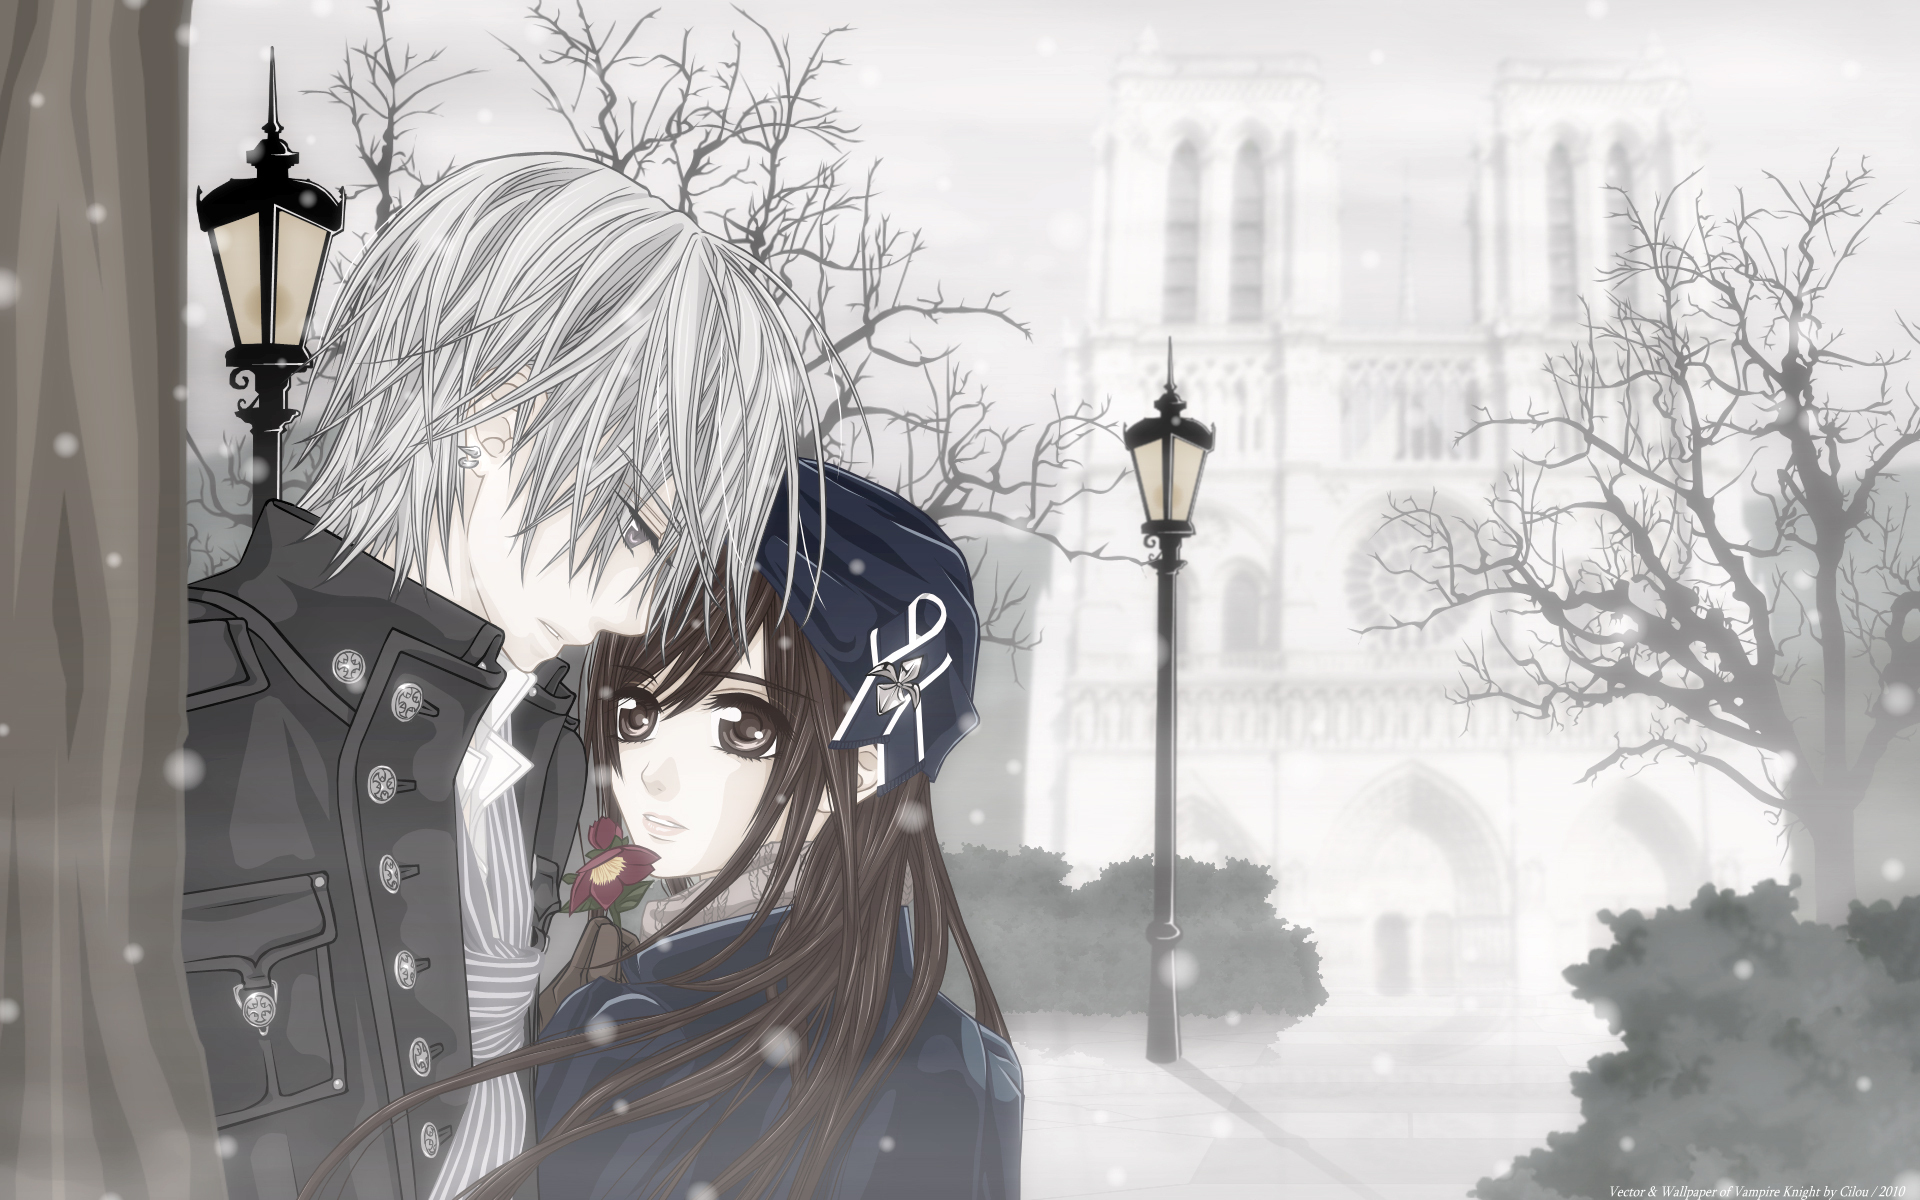 Vampire knight hd wallpaper background image 1920x1200 - Vampire knight anime wallpaper ...